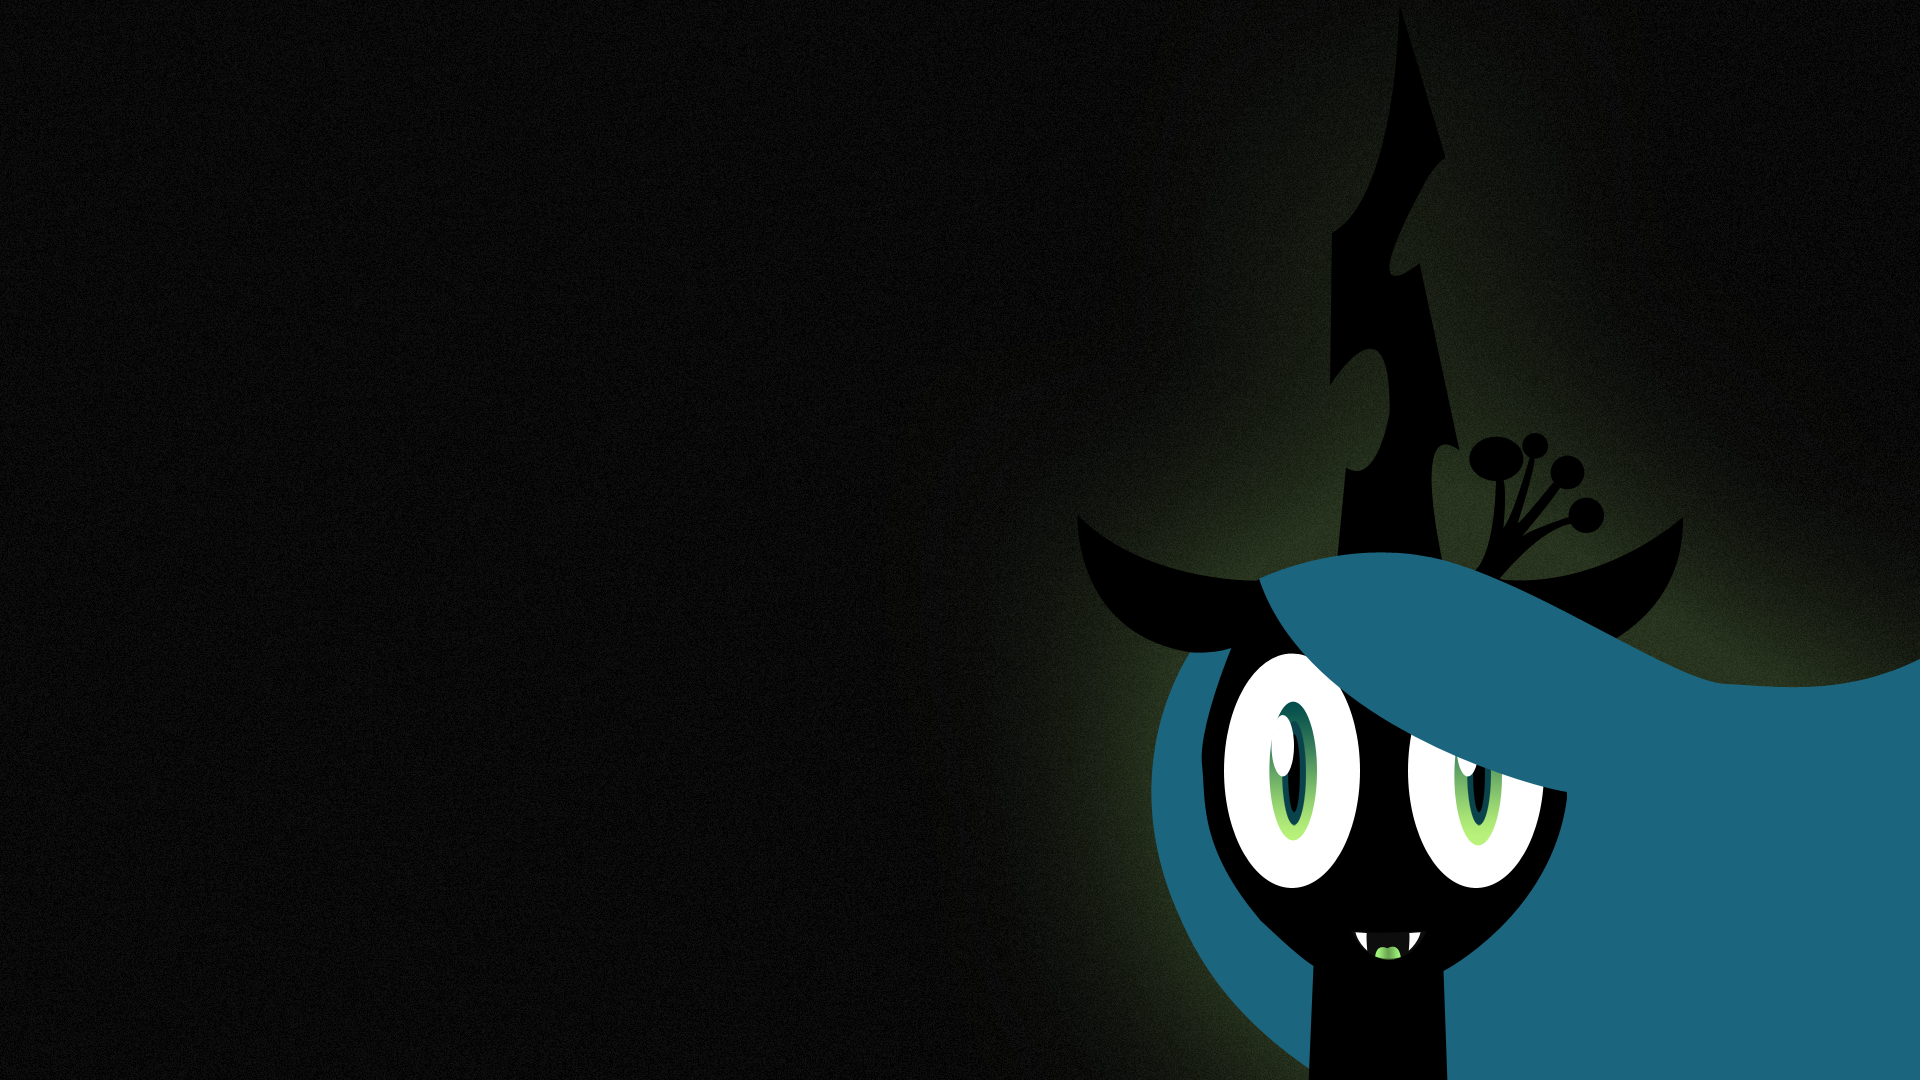 Simple Queen Chrysalis Wallpaper by techs181